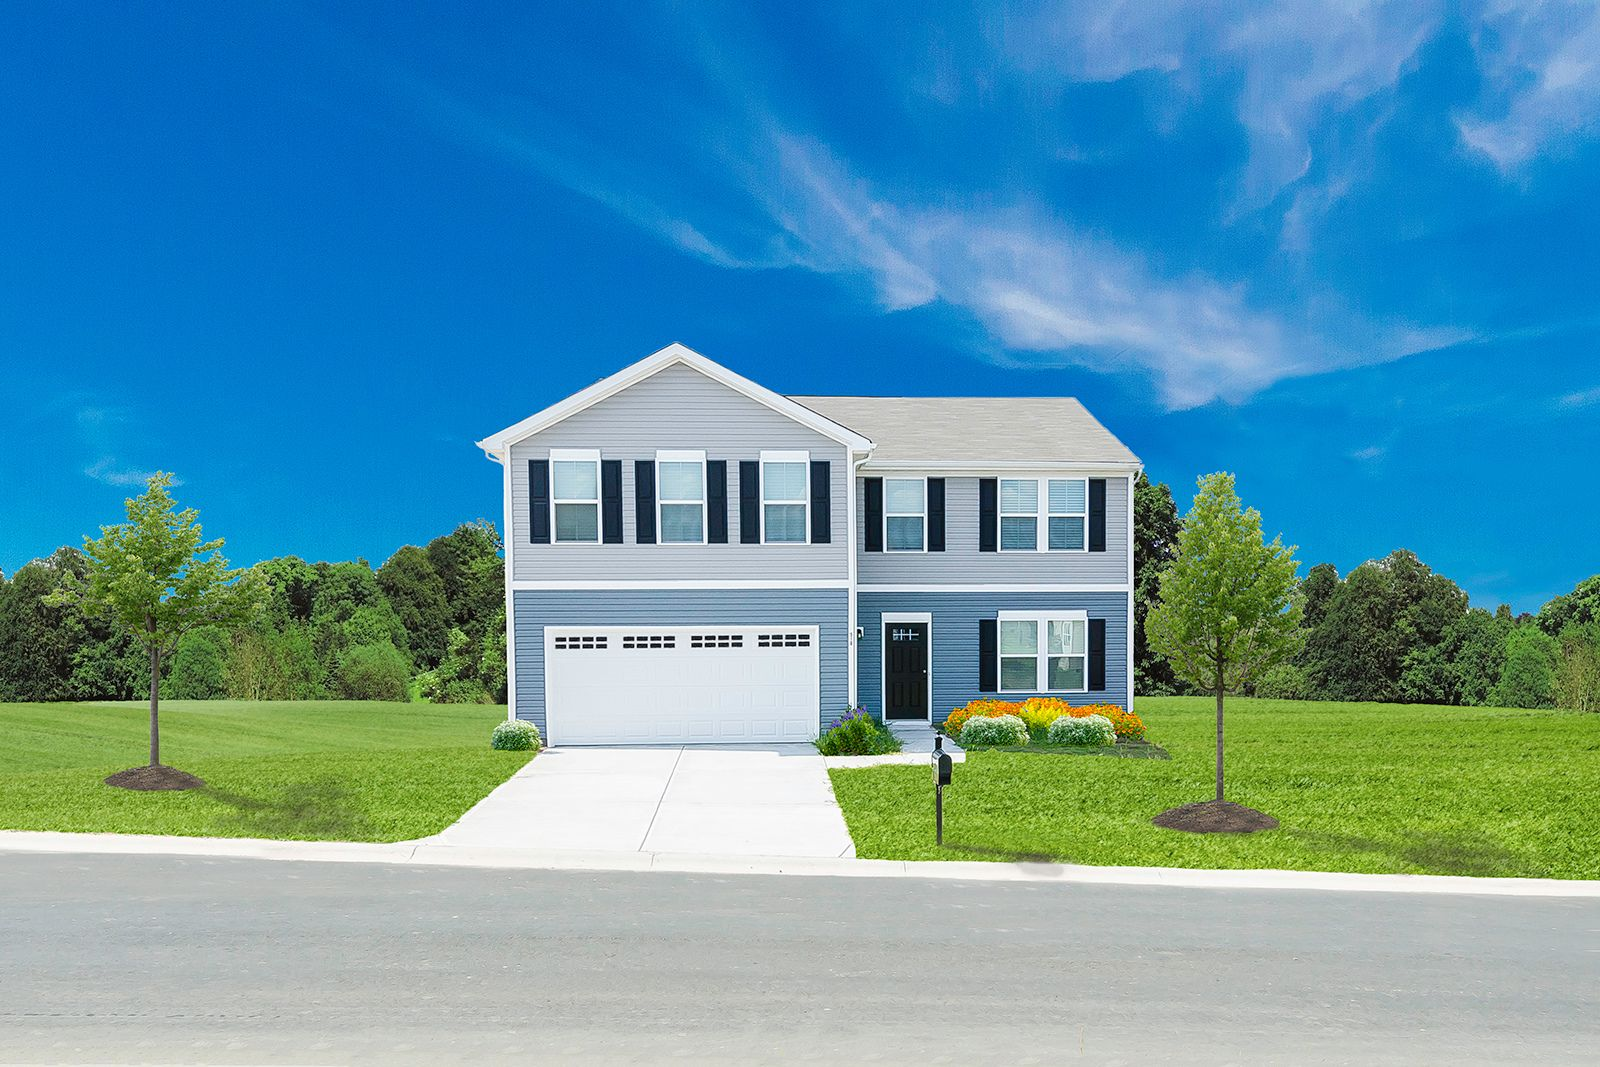 Single Family for Sale at Artists Walk - Plan 2203 2 Galleria Drive Mays Landing, New Jersey 08330 United States